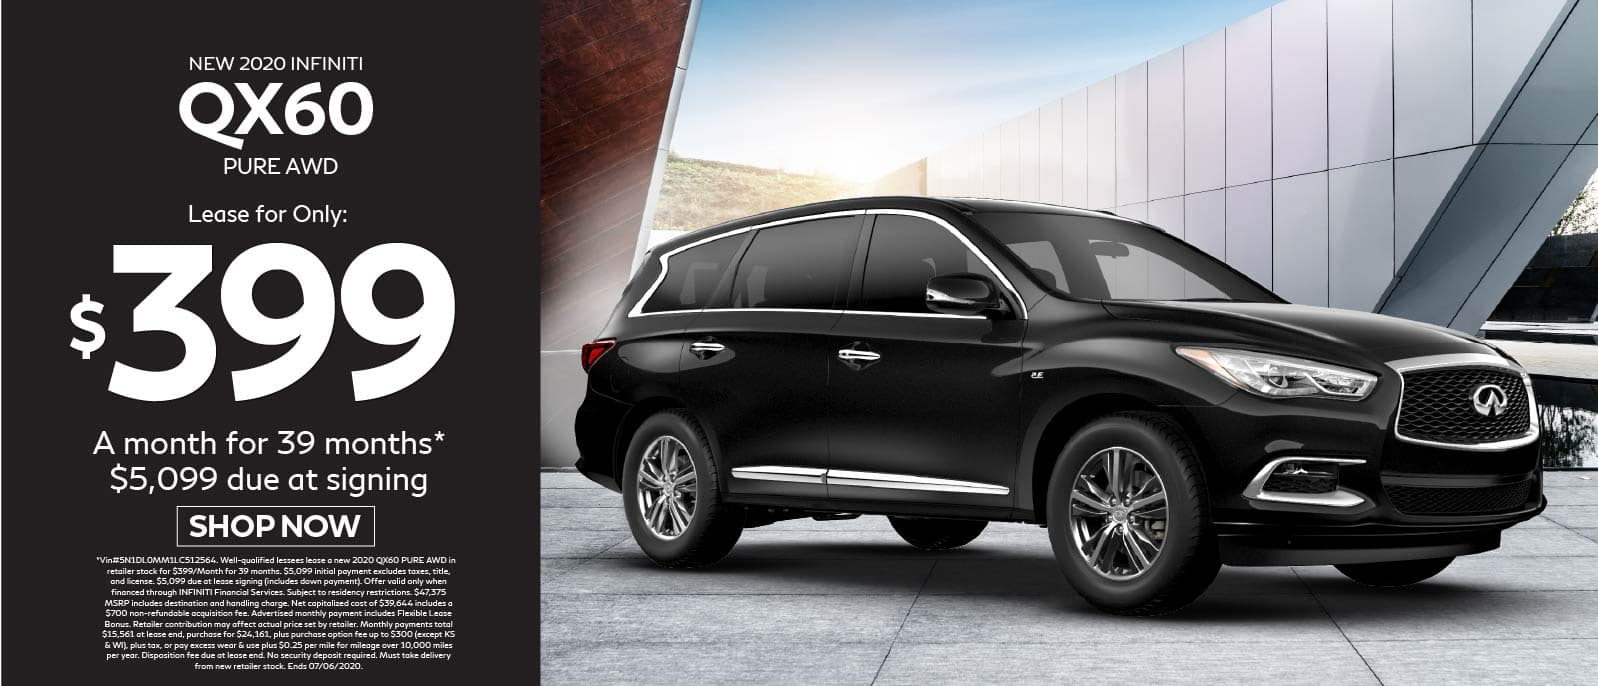 2020 INFINITI QX60 Pure AWD Lease for $399 a month for 39 months $5099 due at signing. Shop Now.